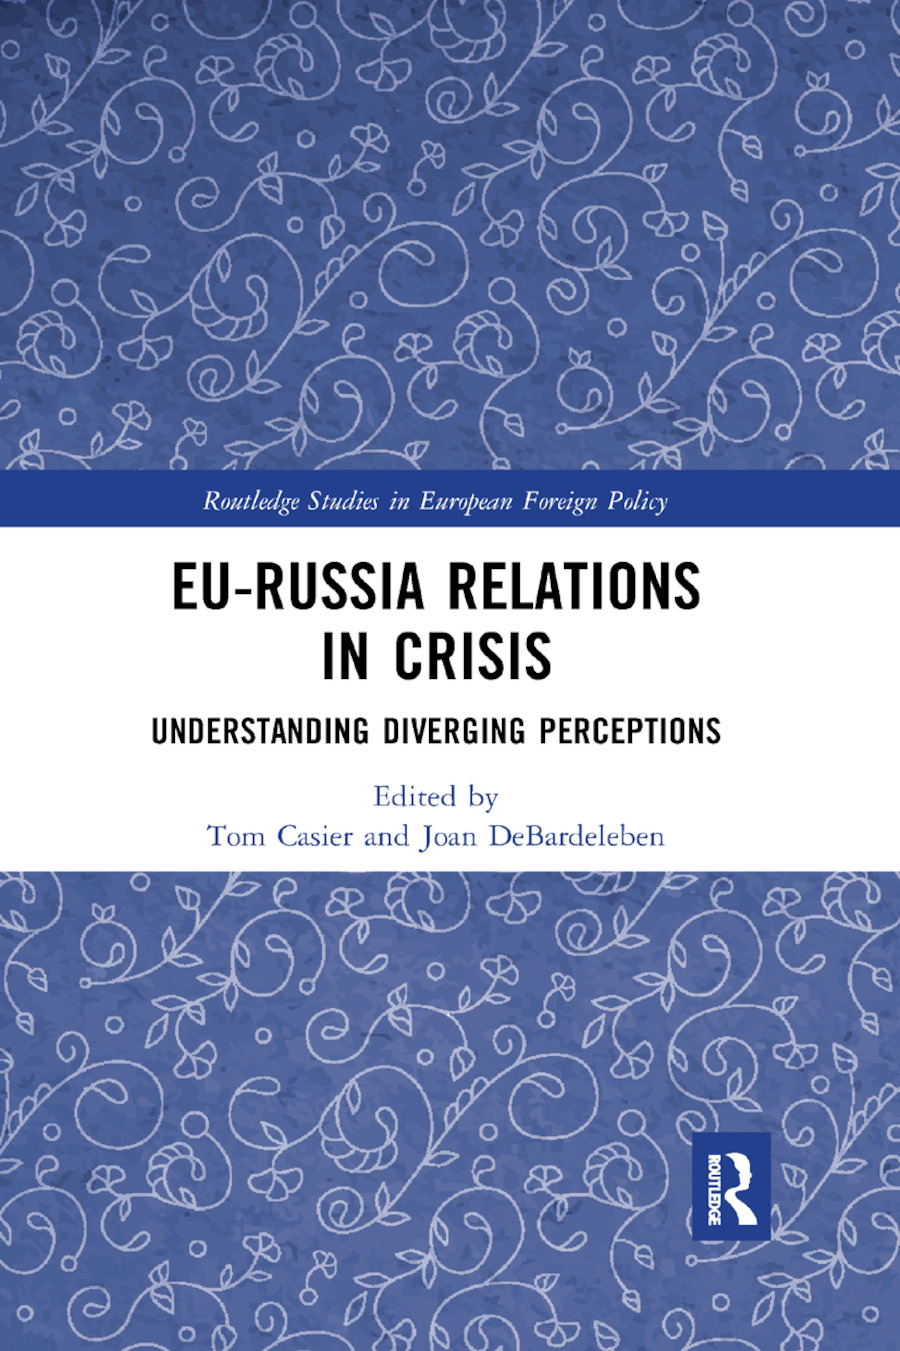 EU-Russia Relations in Crisis: Understanding Diverging Perceptions, 1st Edition (Paperback) book cover